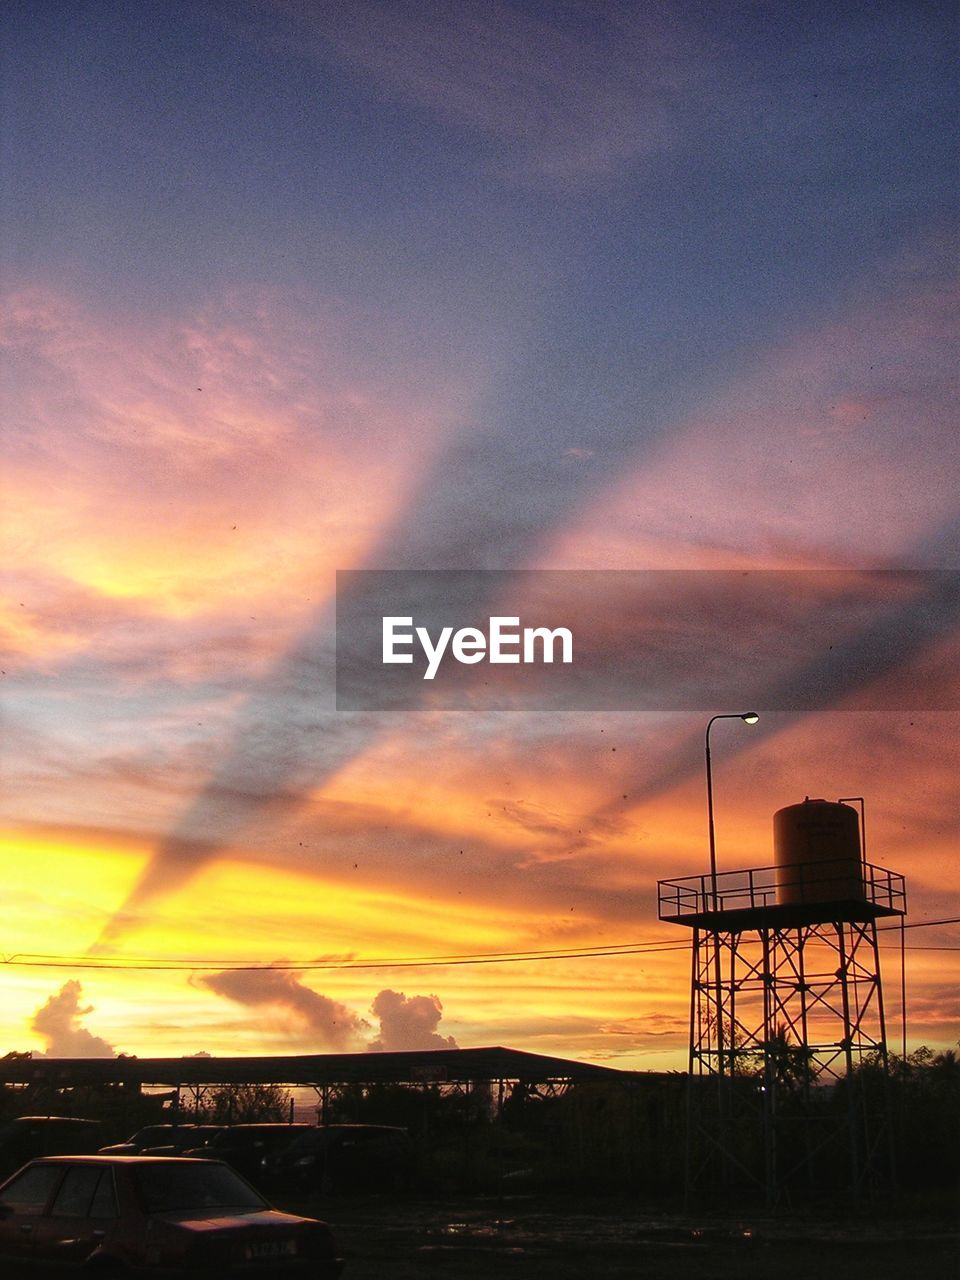 sunset, sky, cloud - sky, architecture, built structure, orange color, building exterior, nature, no people, beauty in nature, outdoors, water tower - storage tank, silhouette, dusk, storage tank, low angle view, scenics - nature, street, factory, transportation, water conservation